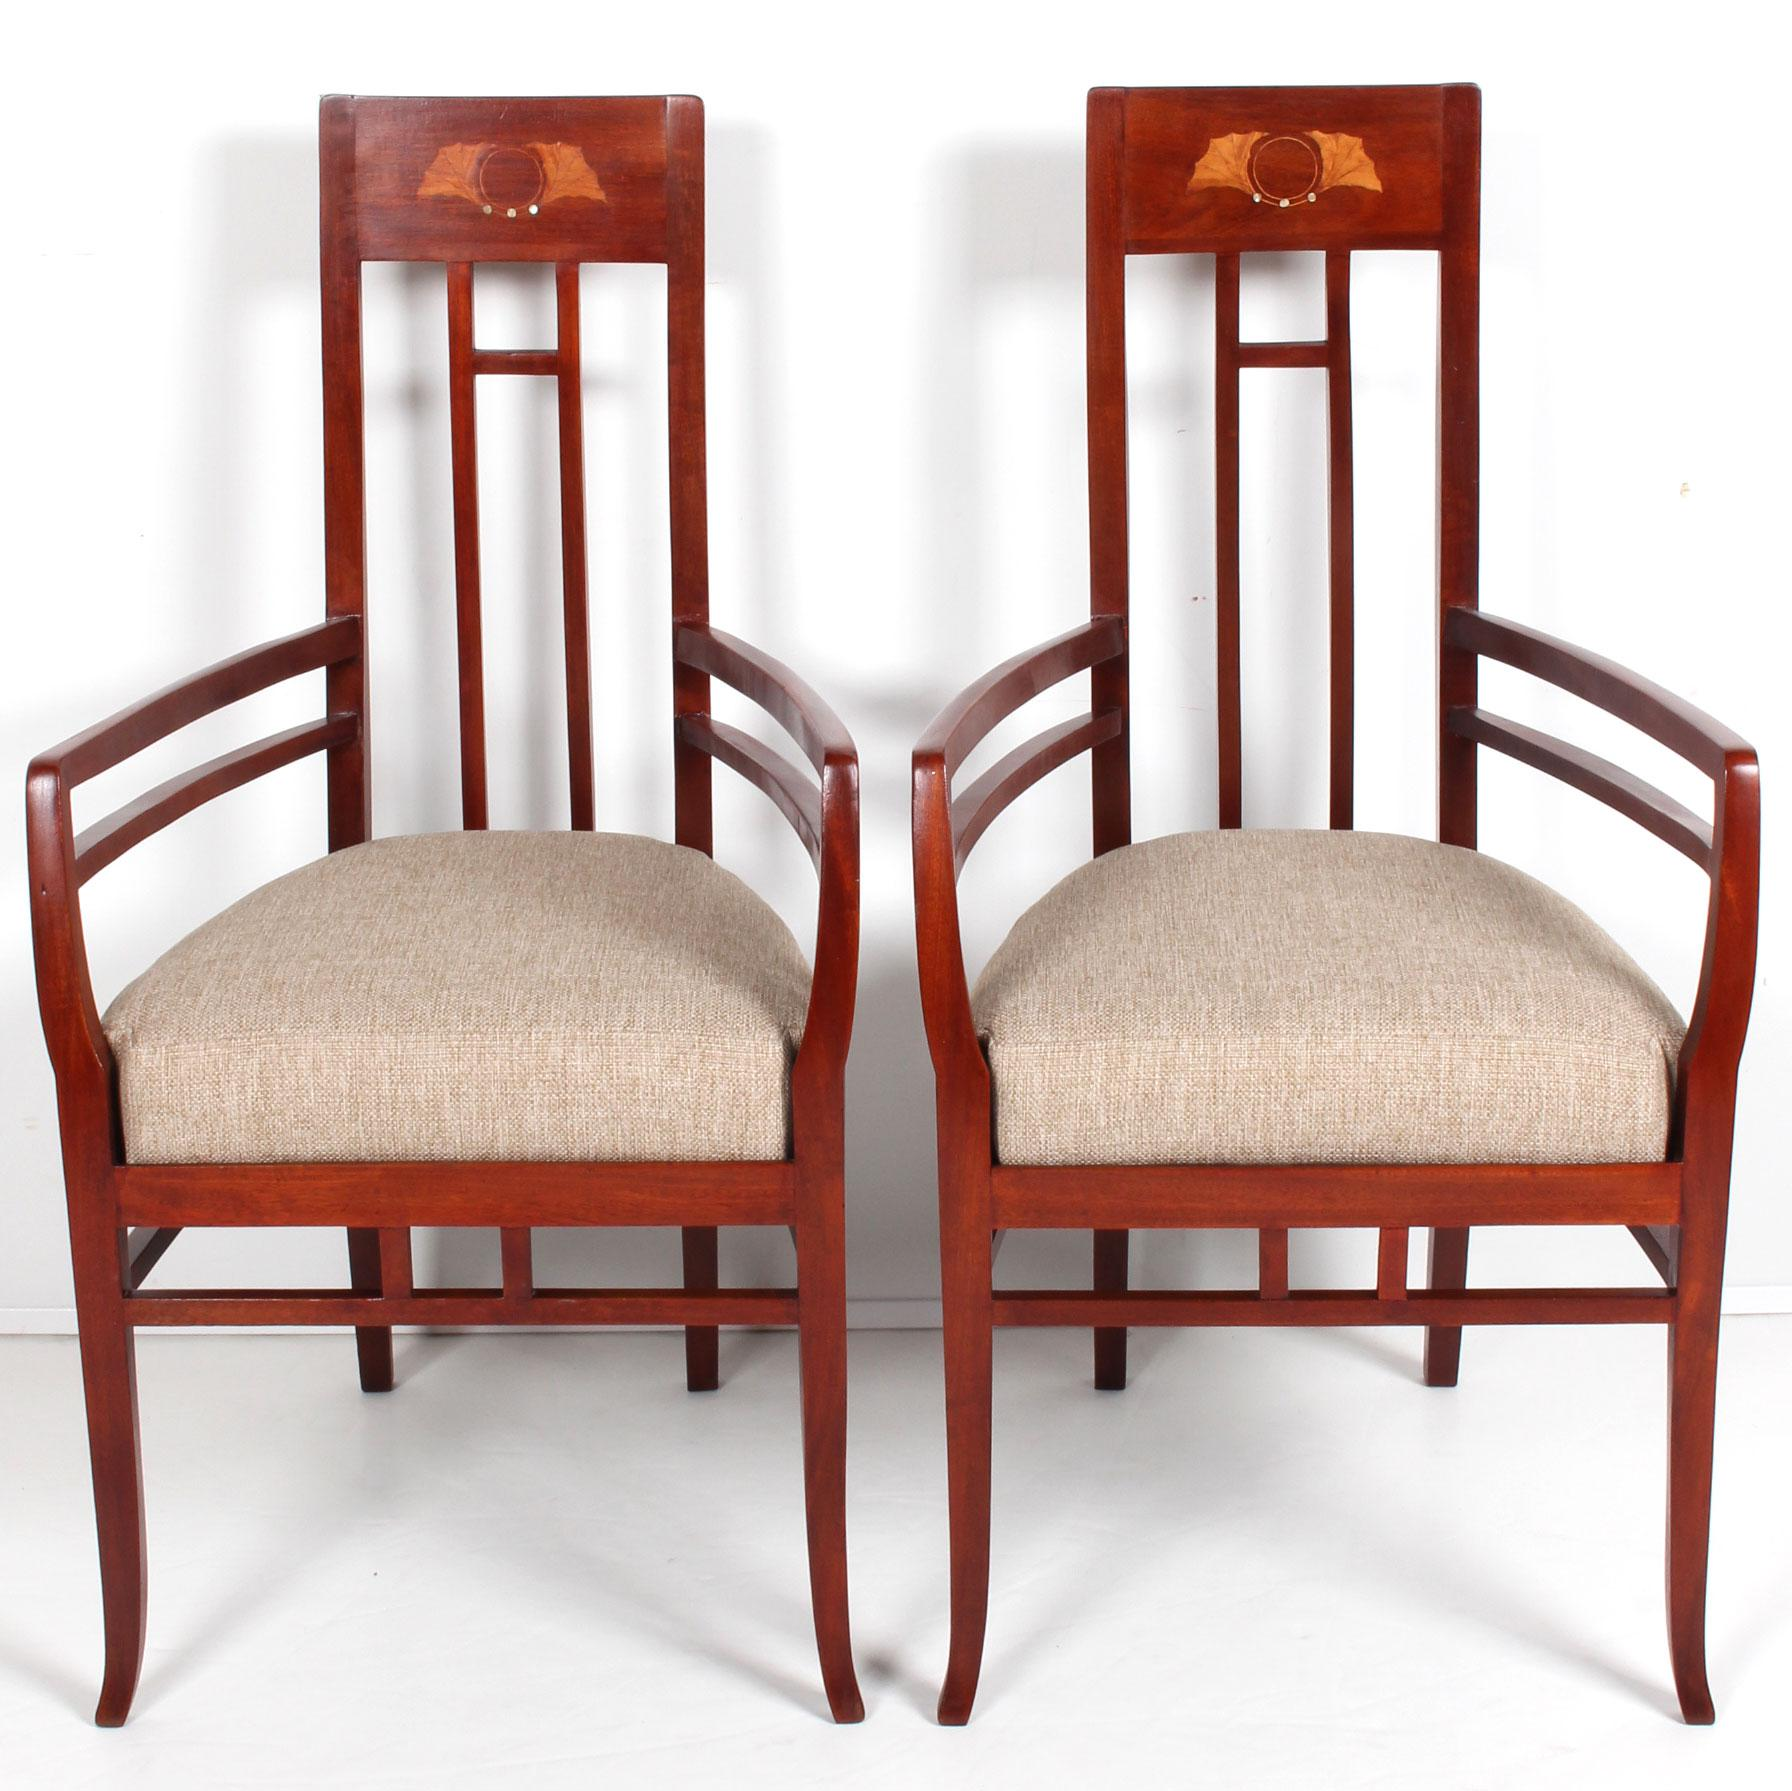 Striking And Artistically Executed, This Set Of C. 1920 Art Nouveau Chairs  With Exaggerated